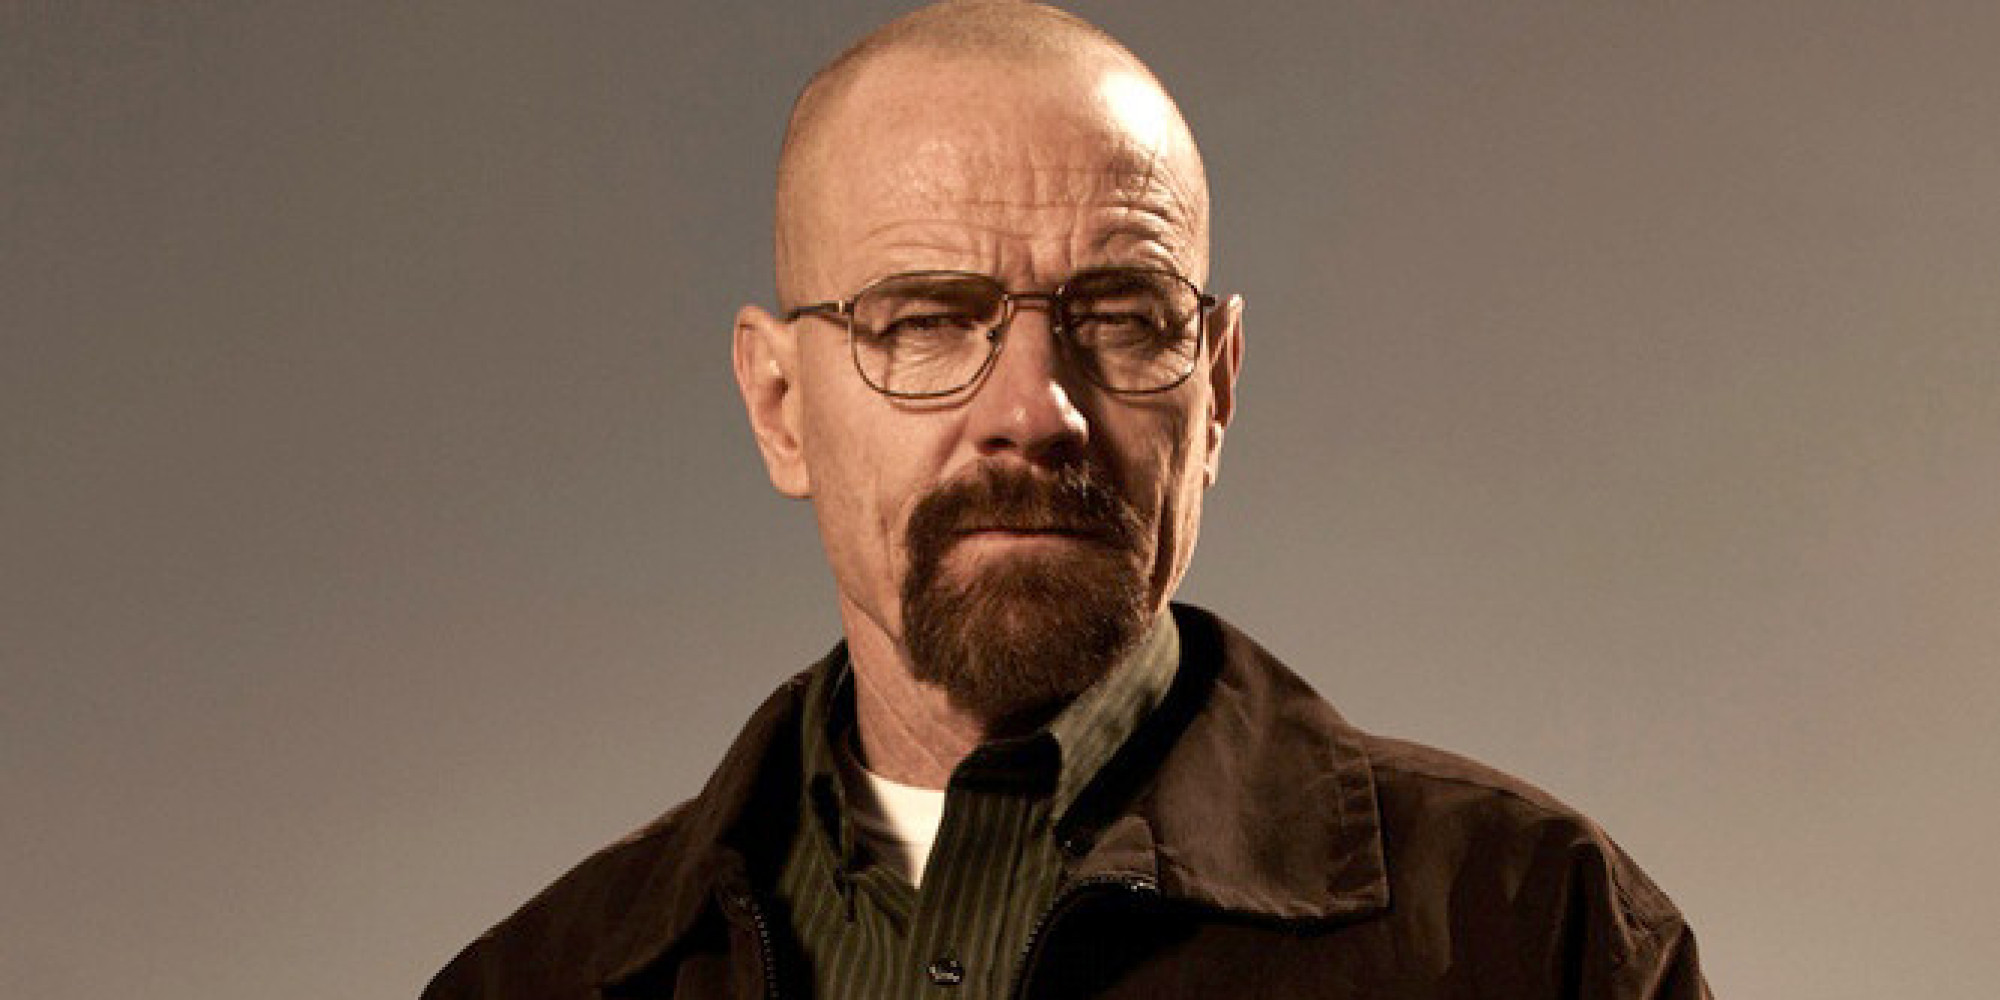 10. Breaking Bad - Walter White (Bryan Cranston)